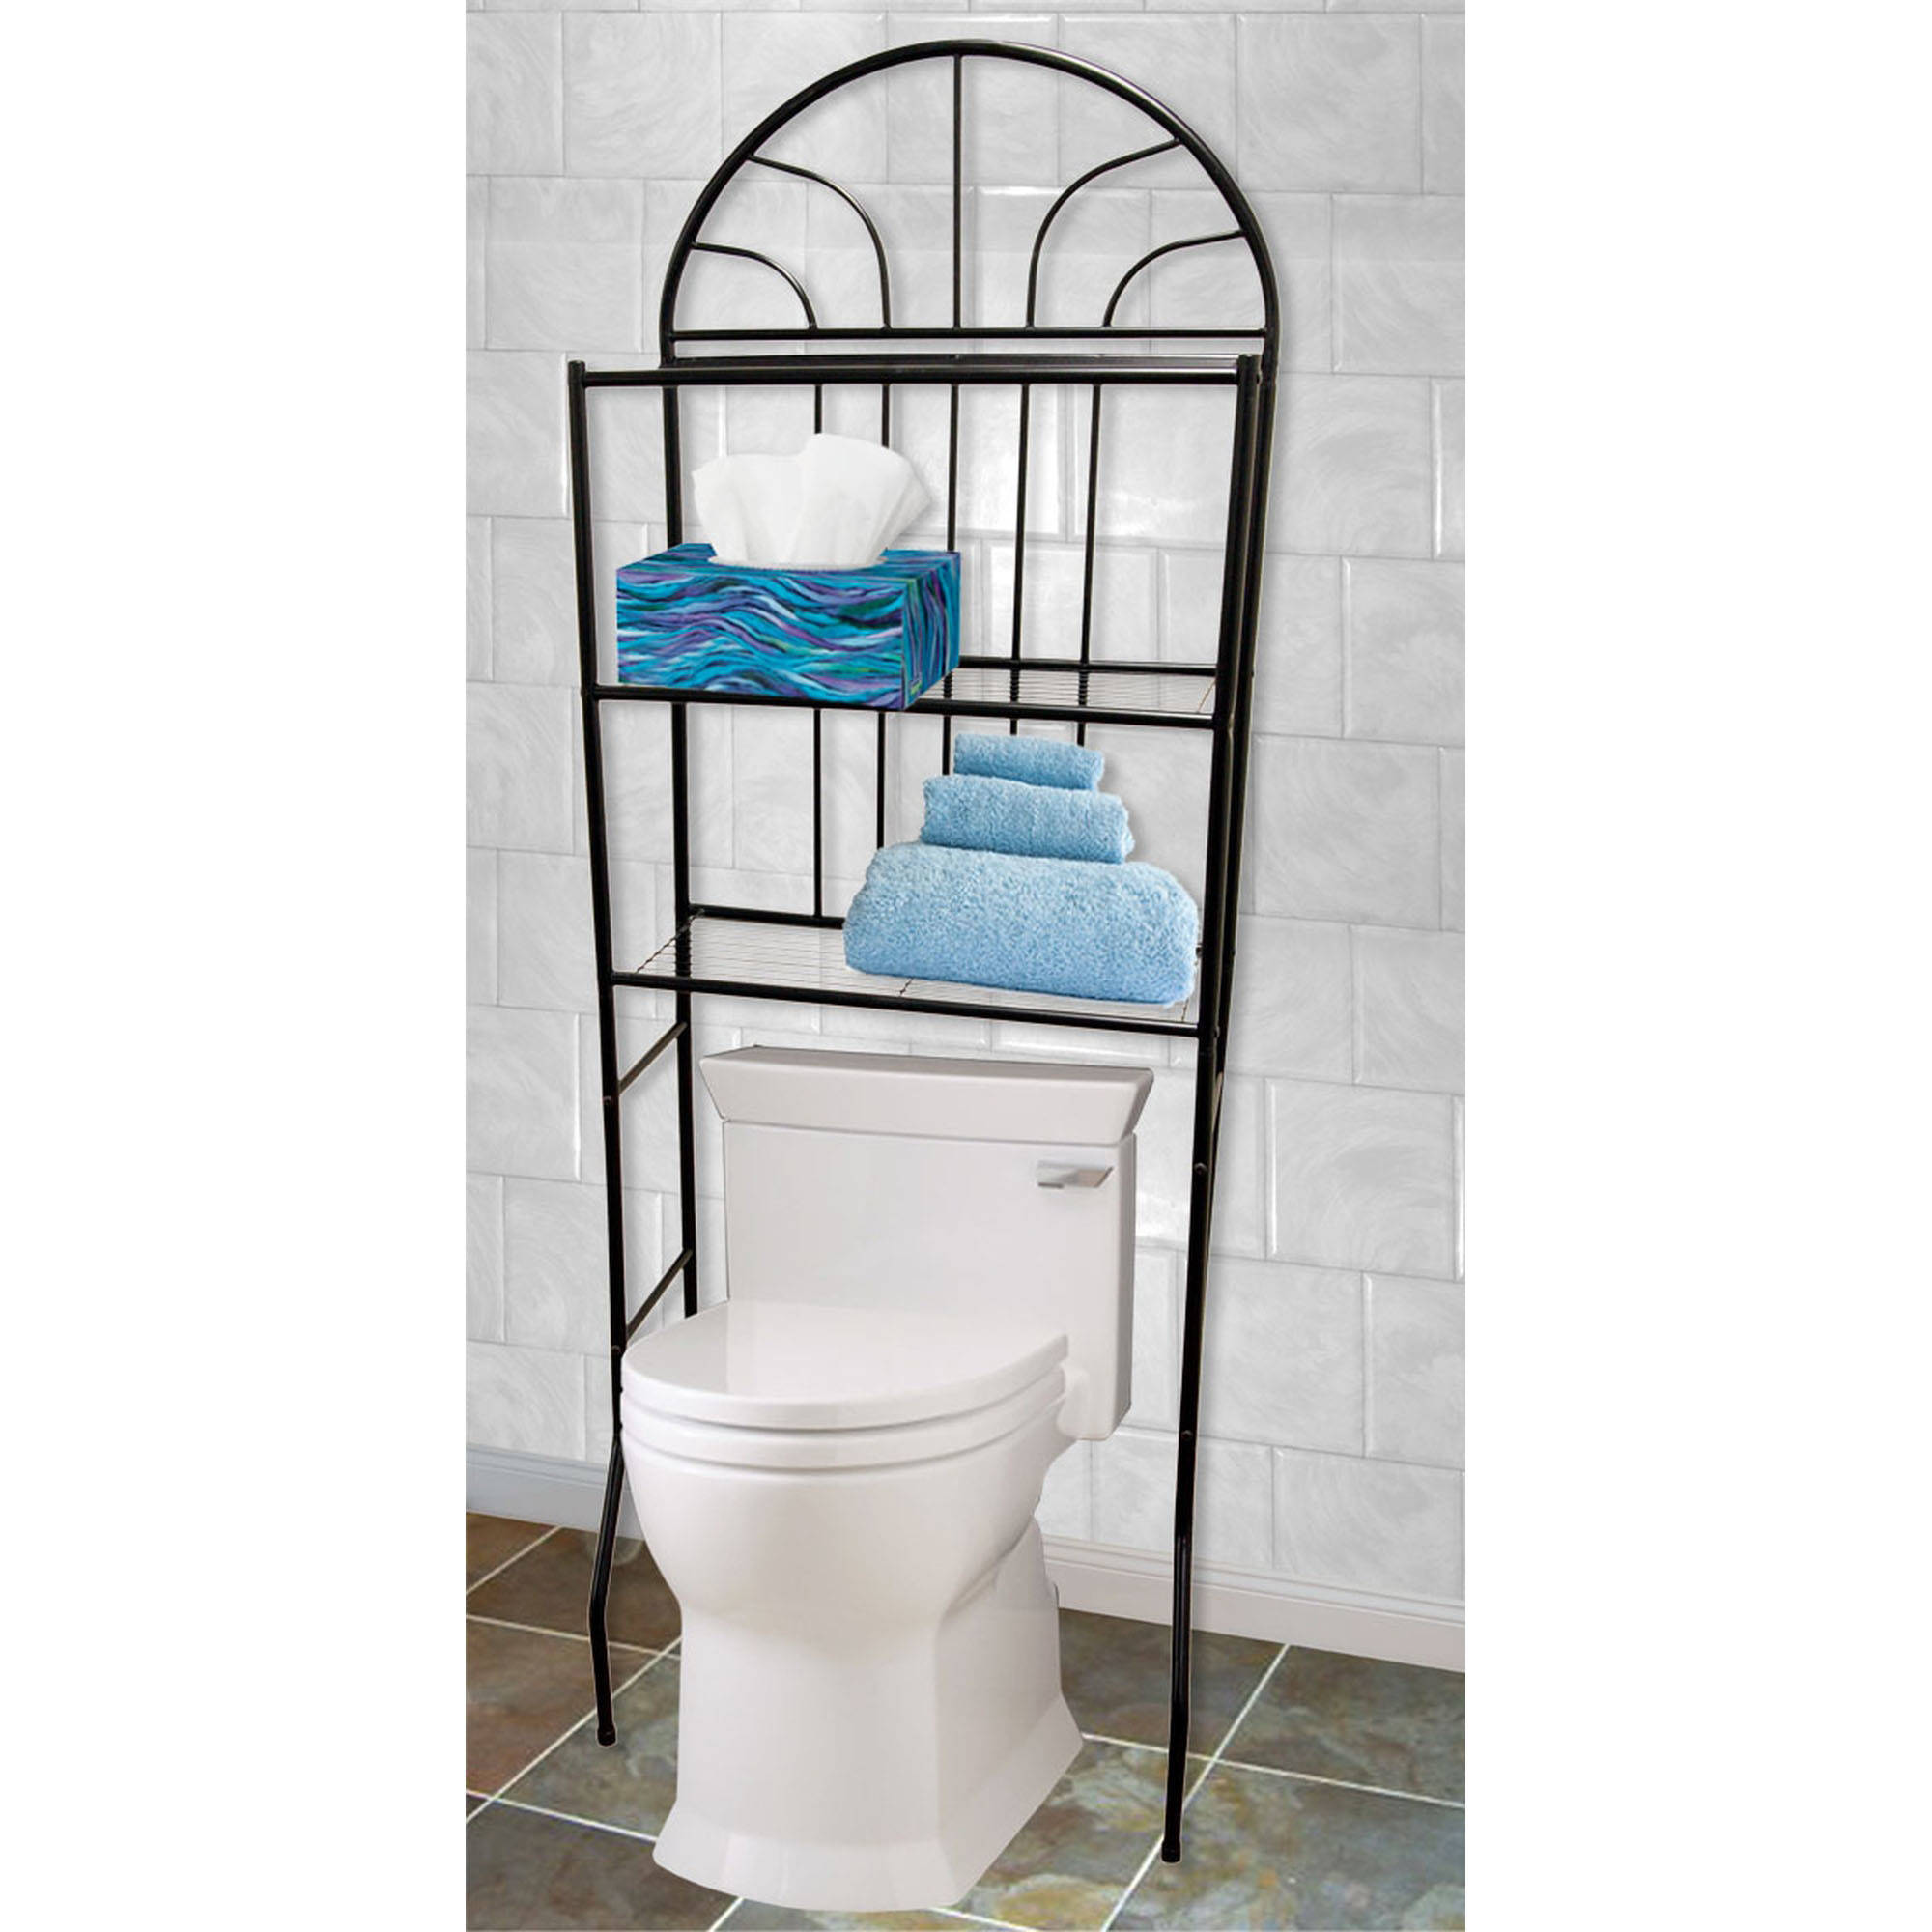 Bathroom Space Saver home basics 3-shelf bathroom space saver - walmart